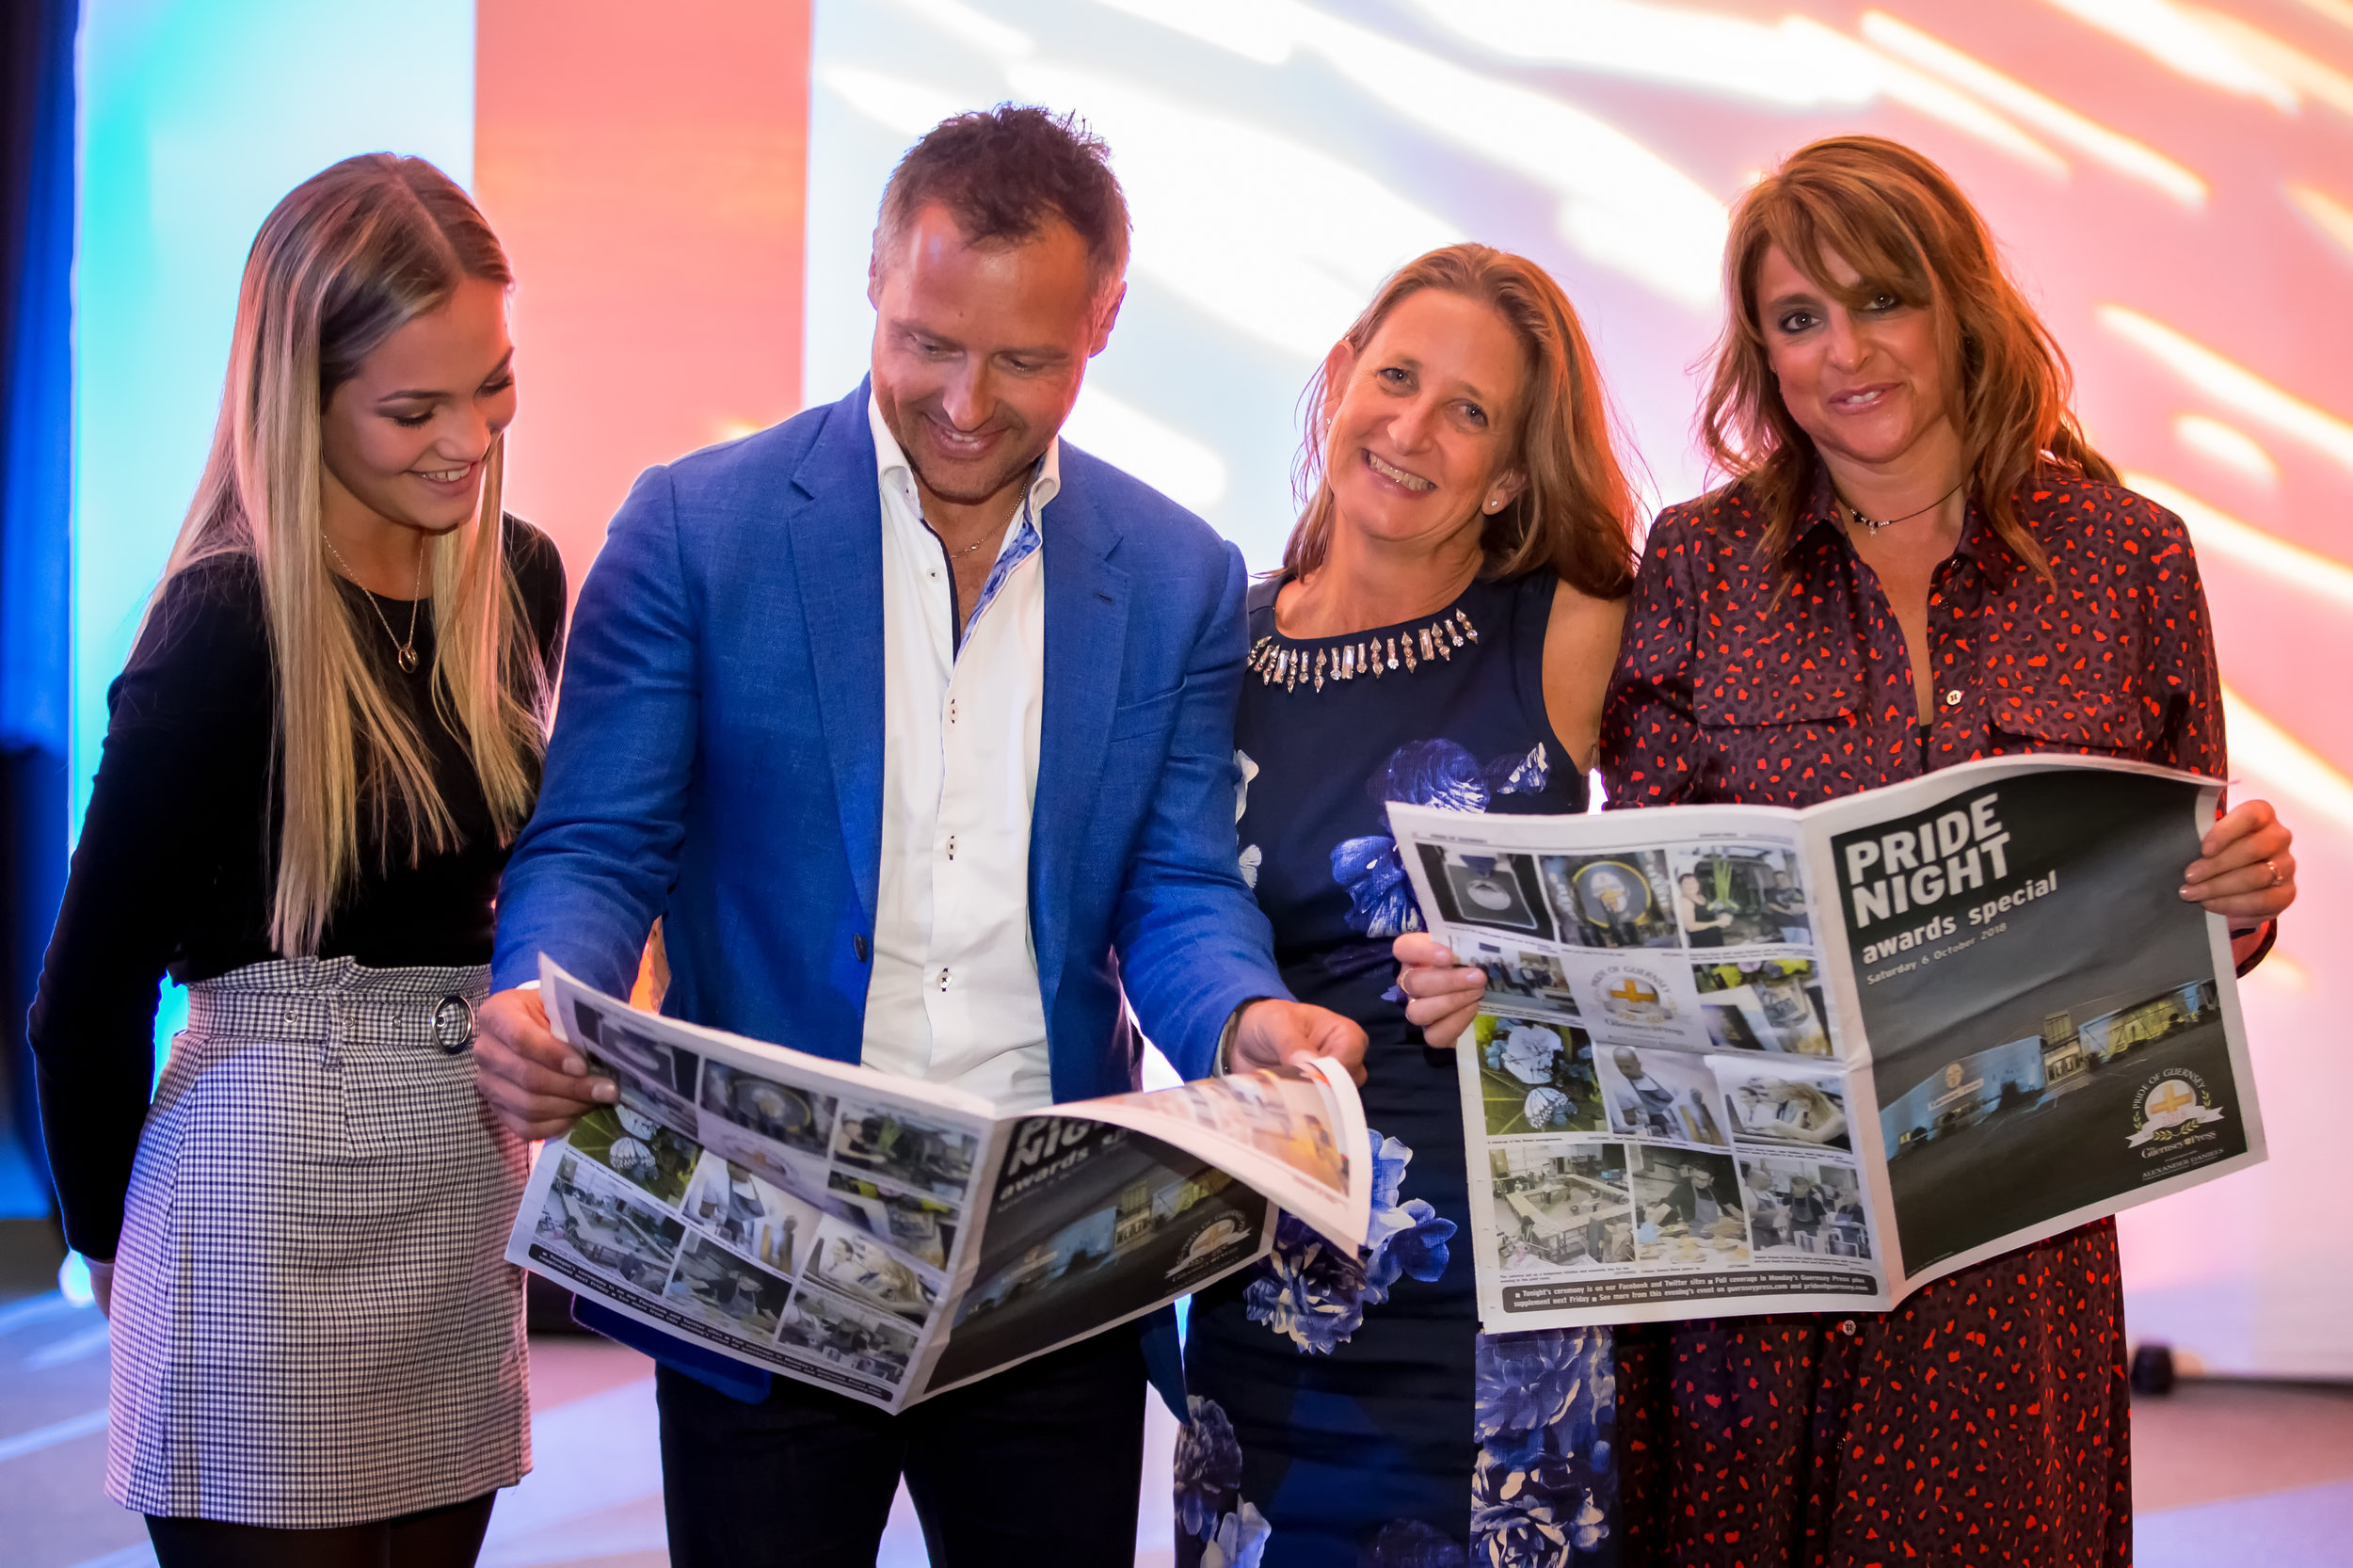 The Guernsey Press Pride of Guernsey Awards held at The Guernsey Press on 6th October 2018… Some well deserved recognition for some outstanding contributions to Guernsey life…